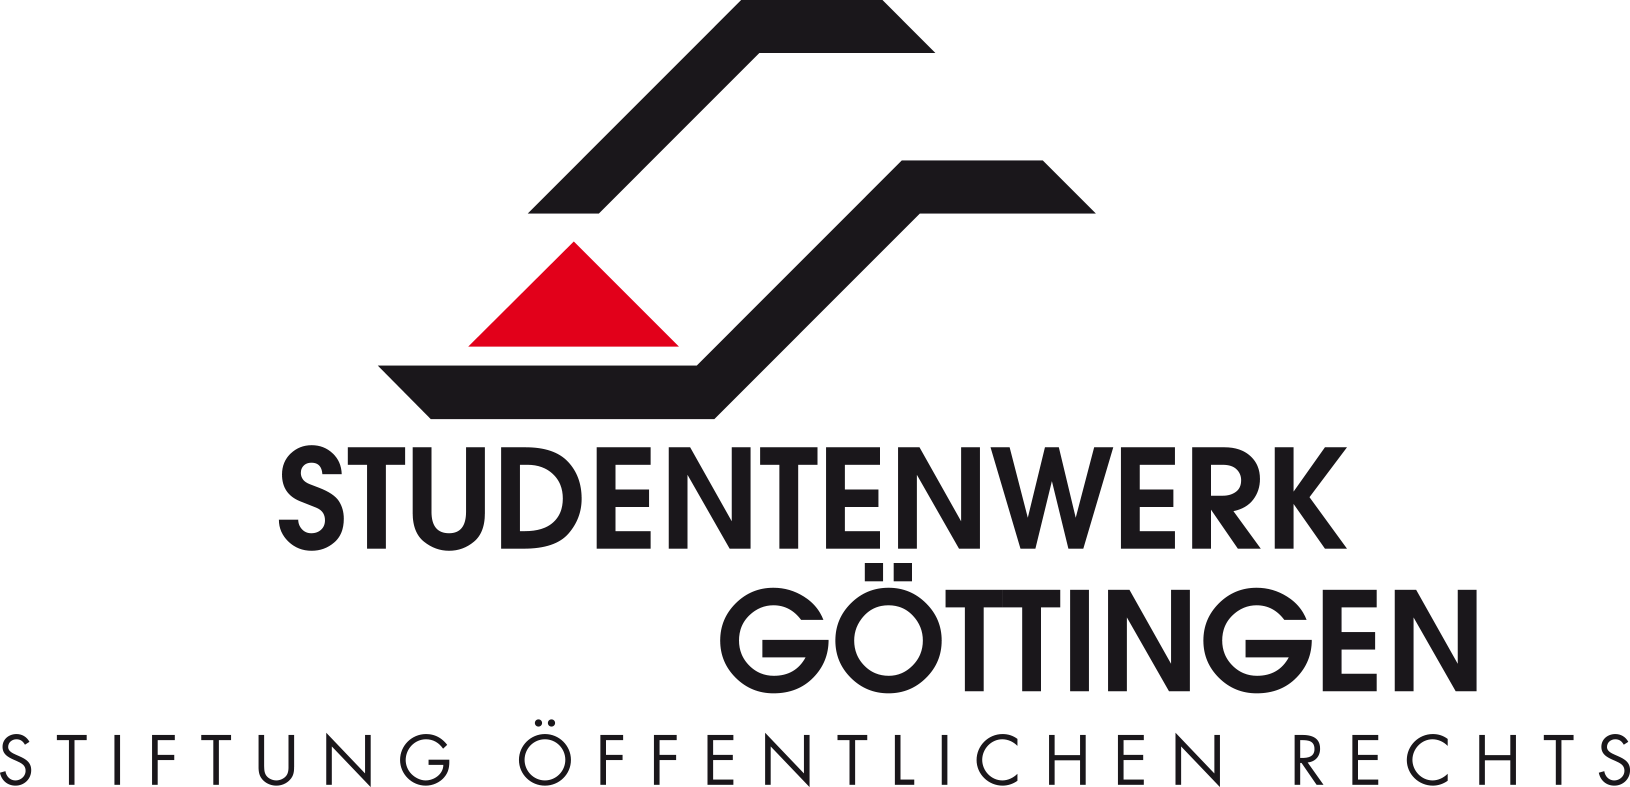 Studentenwerk Göttingen